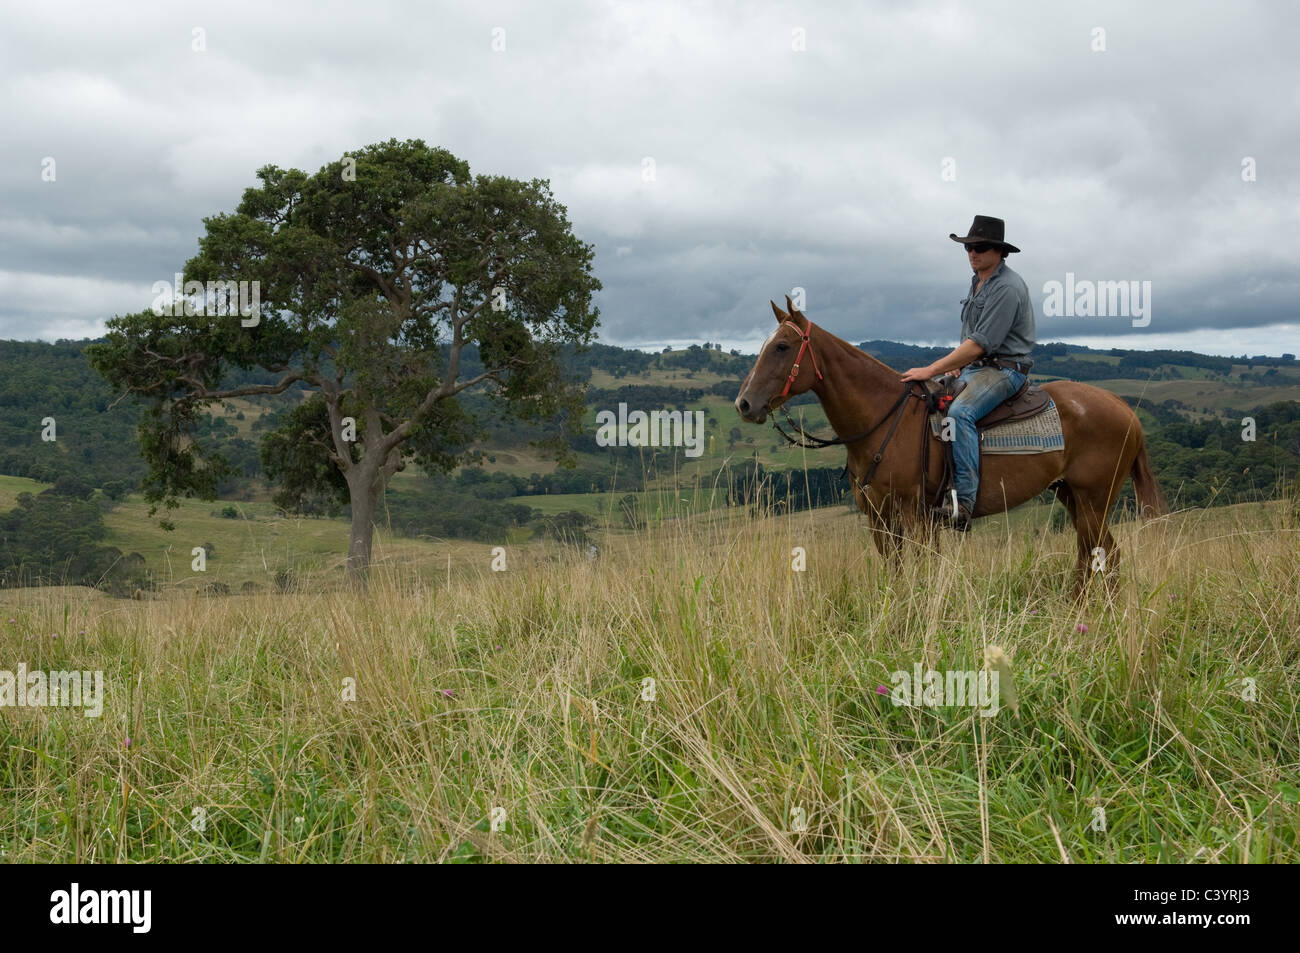 Male rider on horseback in Australia - Stock Image